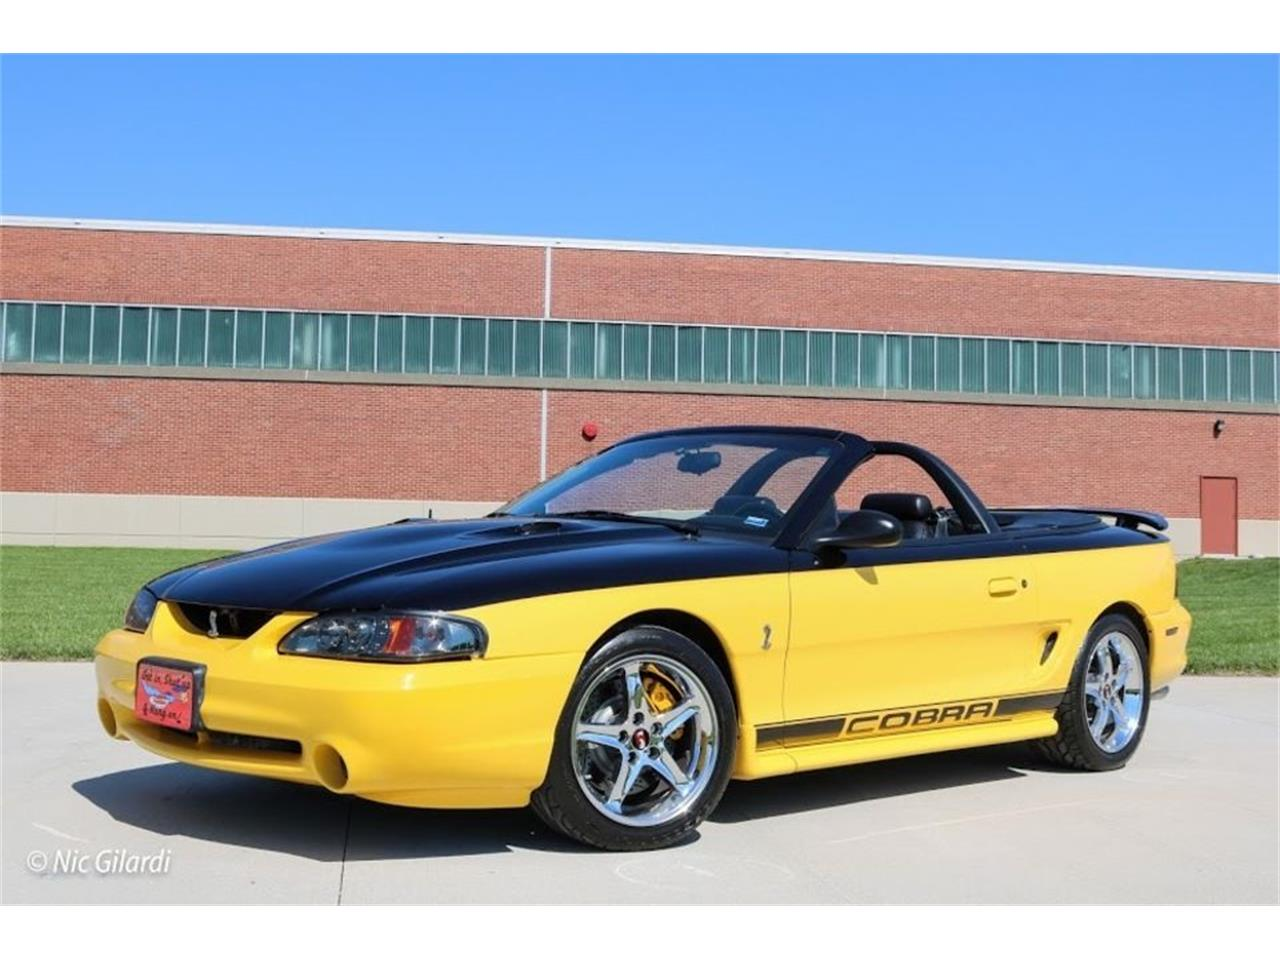 Large picture of 98 mustang mhv9